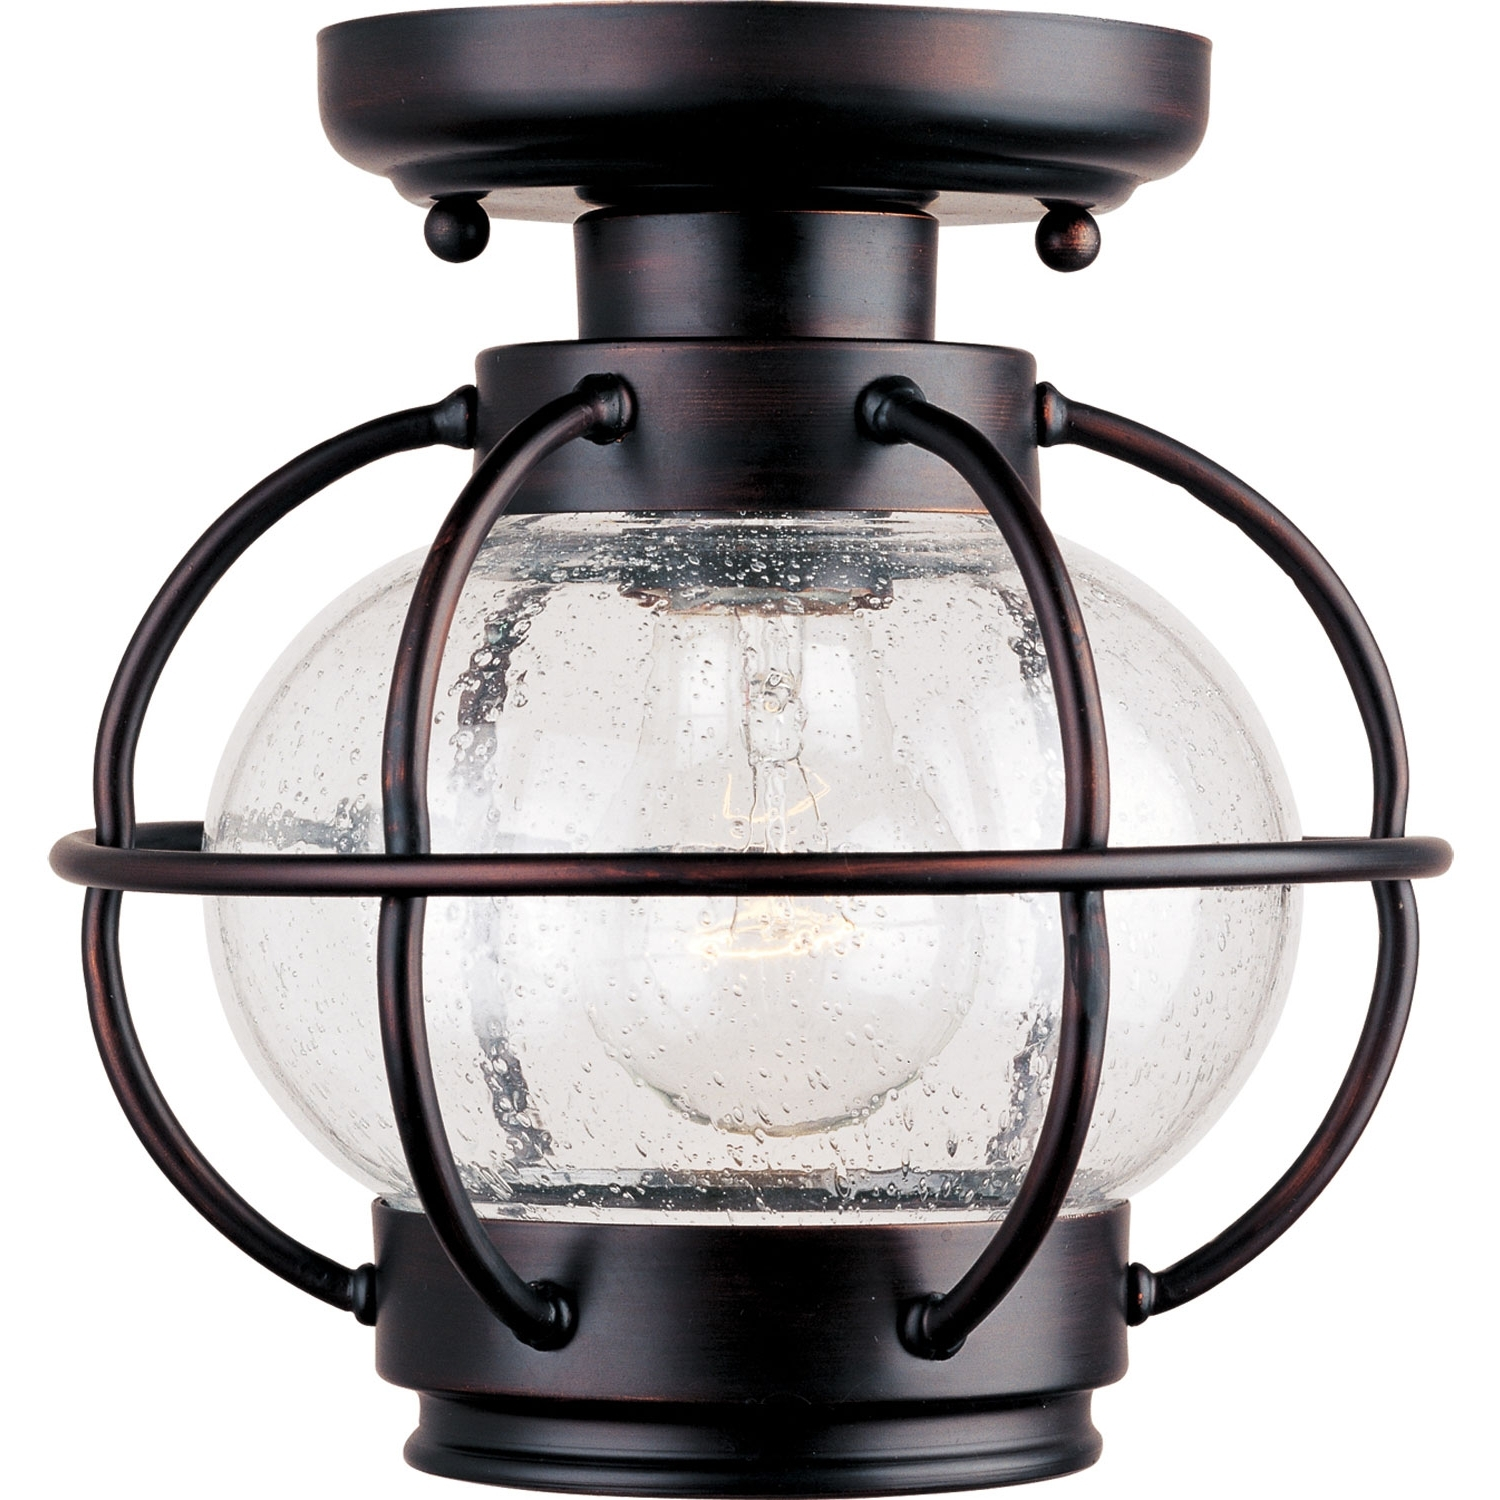 Outdoor Ceiling Fans With Motion Sensor Light Regarding Popular Motion Sensor Outdoor Ceiling Light – Outdoor Lighting Ideas (View 20 of 20)